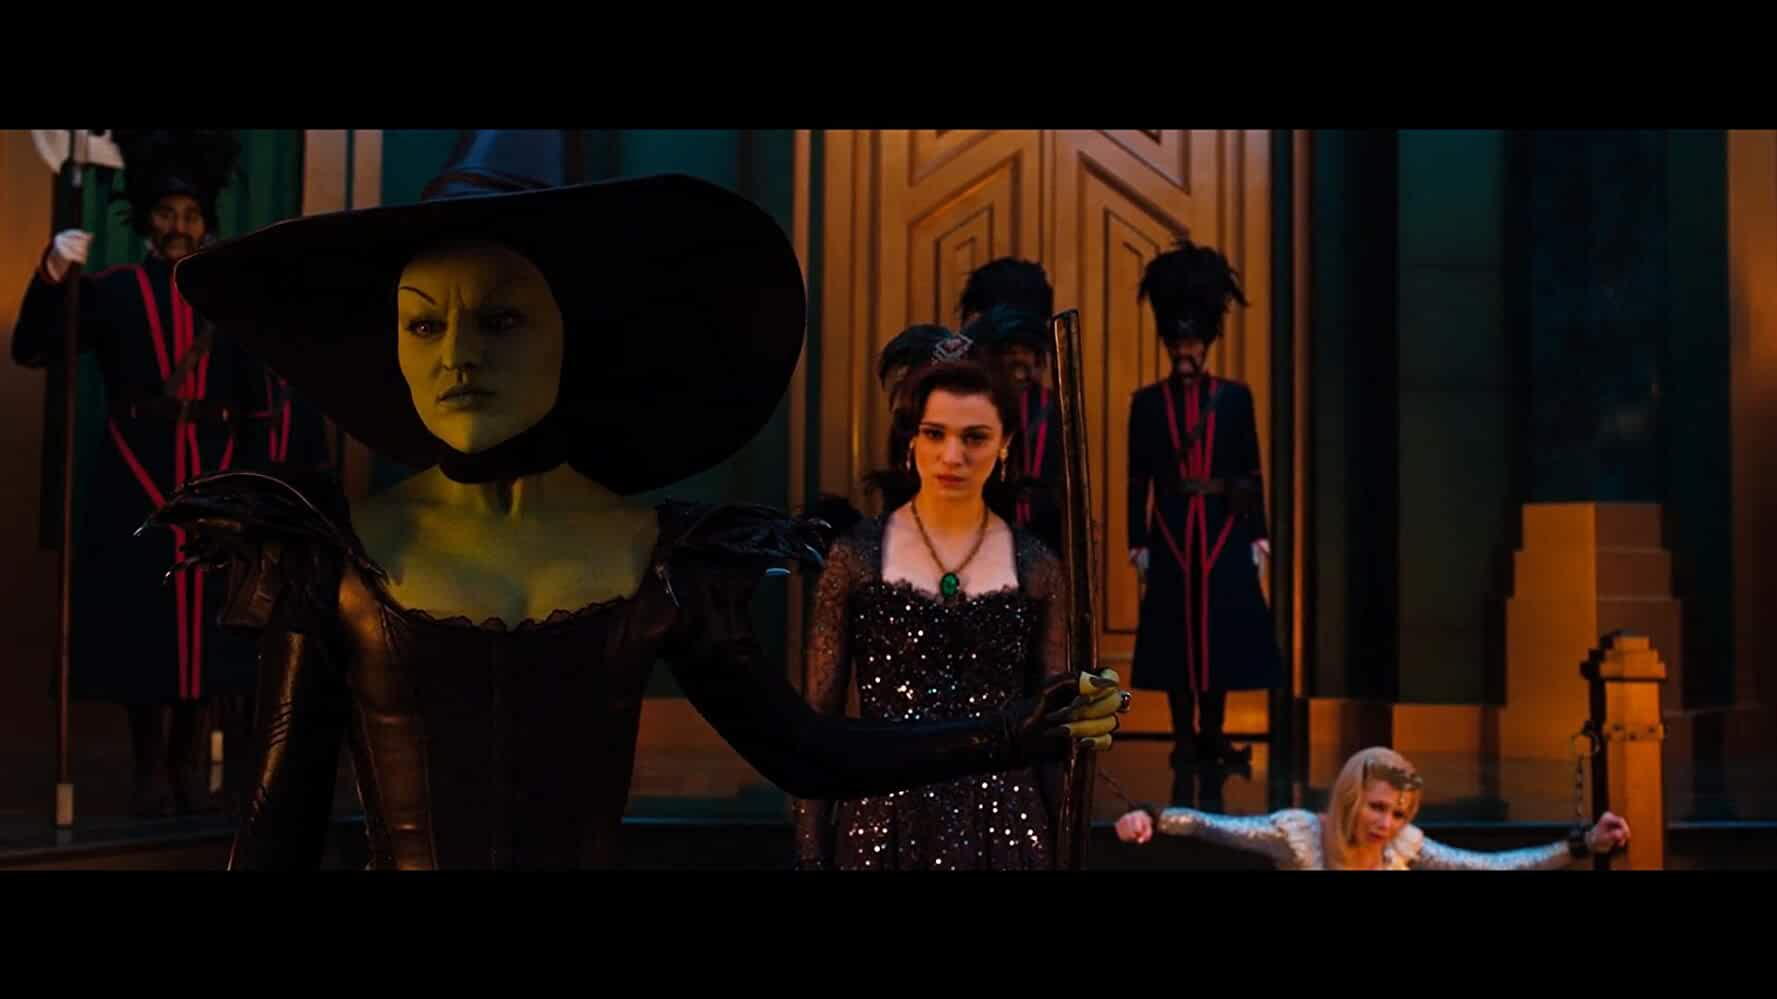 Rachel Weisz, Mila Kunis, and Michelle Williams in Oz the Great and Powerful (2013)